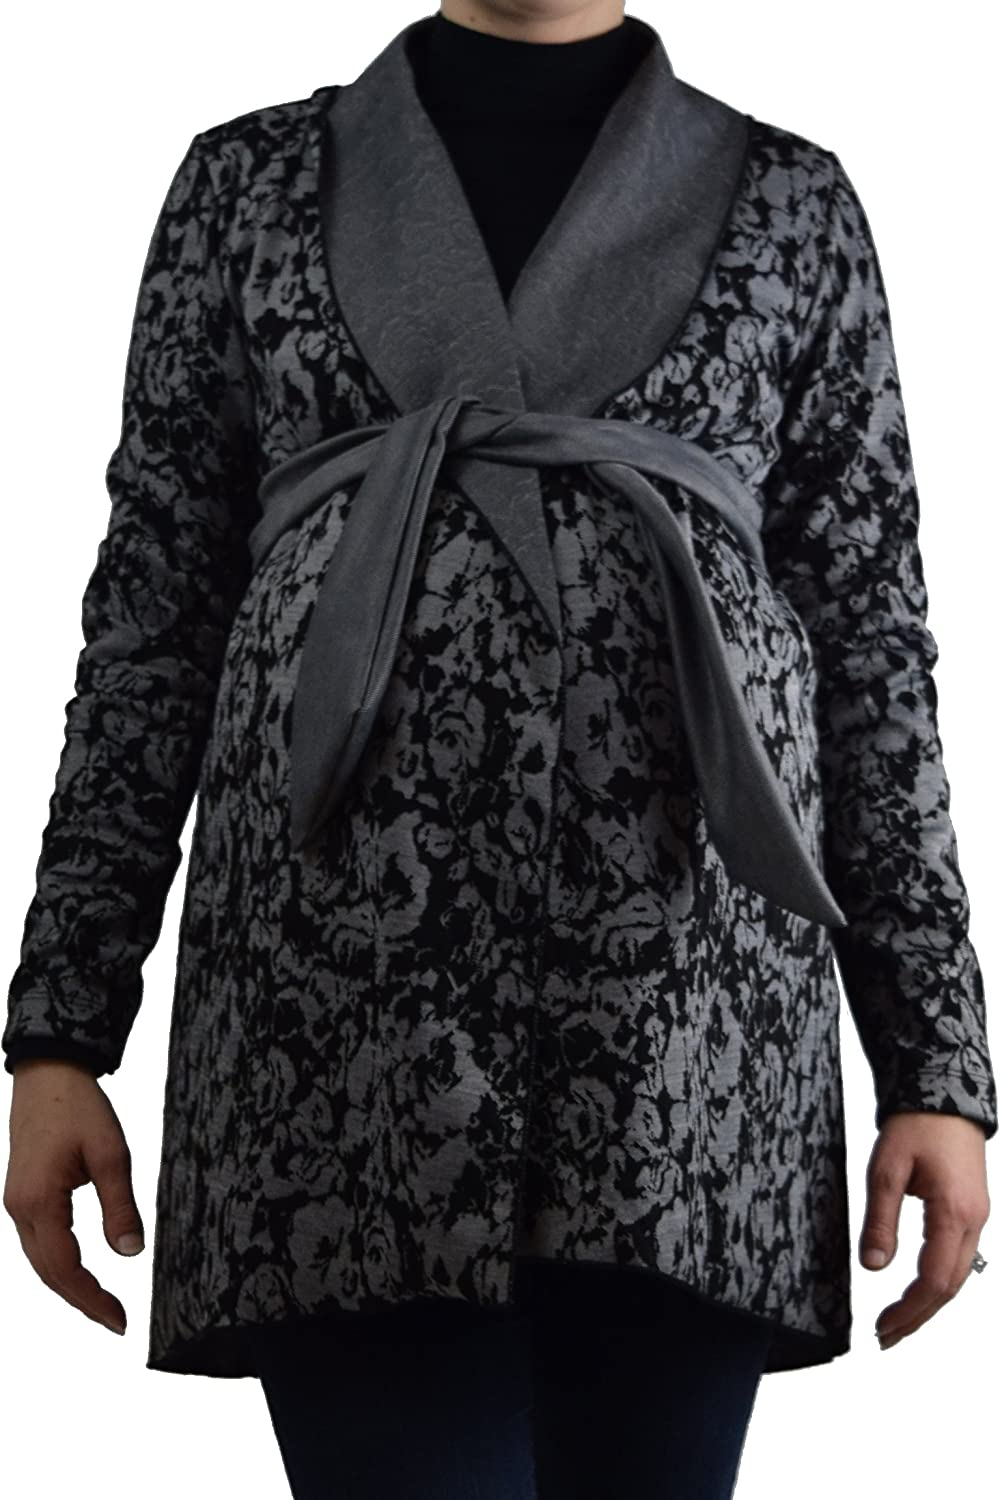 Embrace Your Bump Black & White Floral Maternity Flyaway Sweater Coat